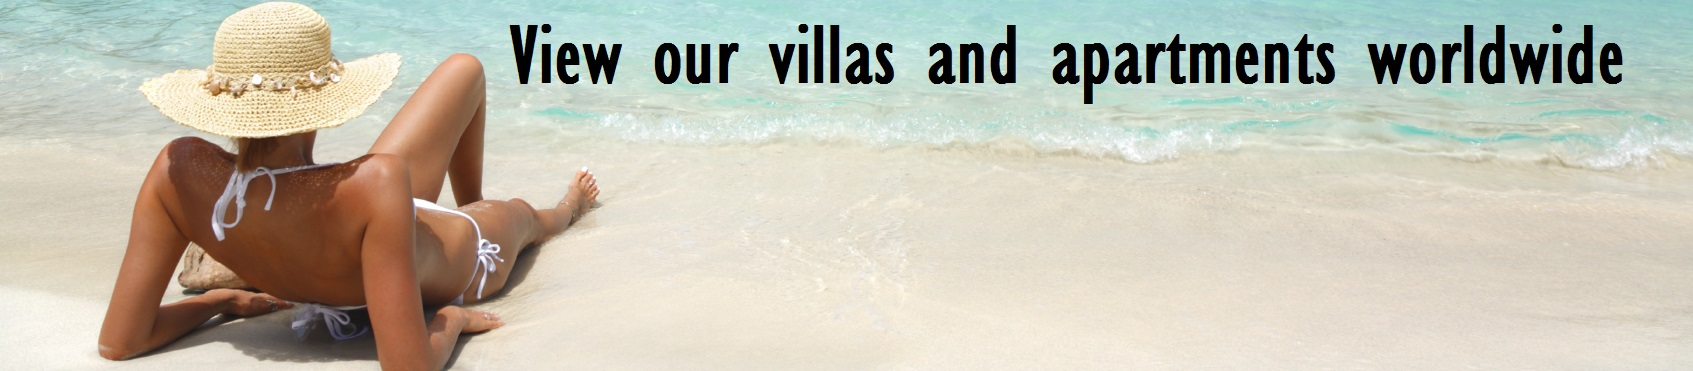 Villas and apartments worldwide